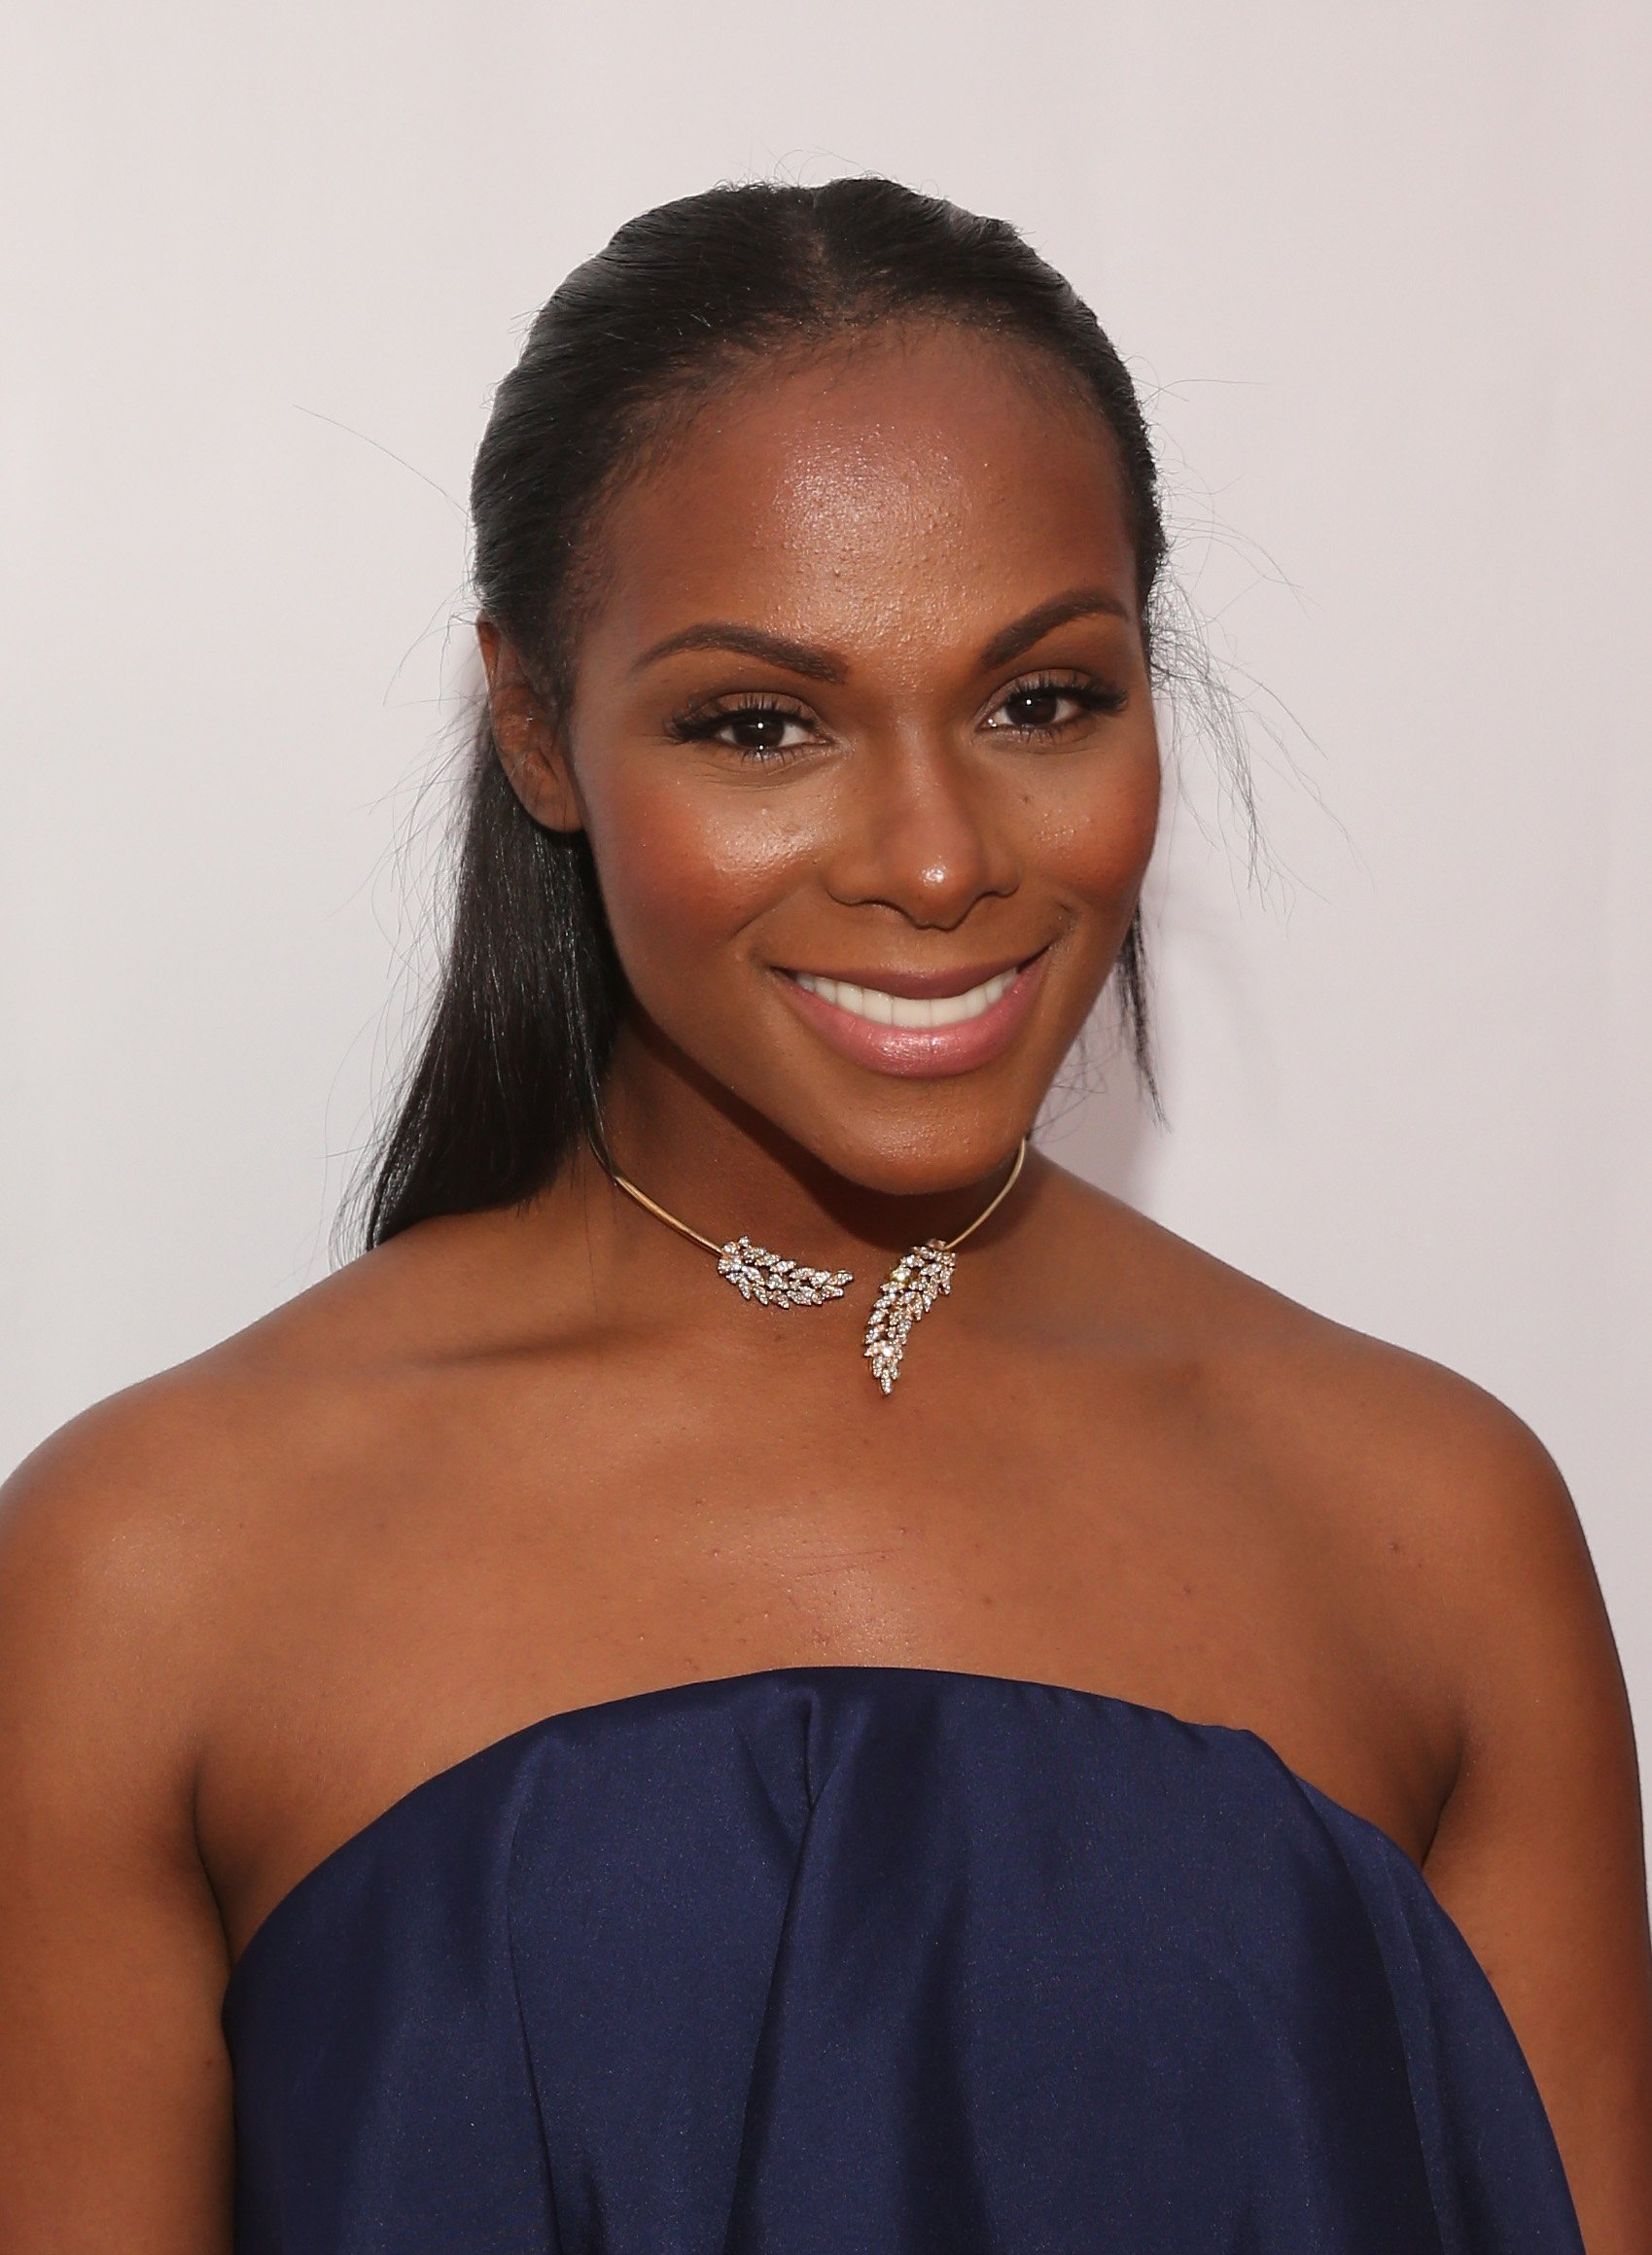 Tika Sumpter at the 48th NAACP Image Awards in February 2017. | Photo: Getty Images